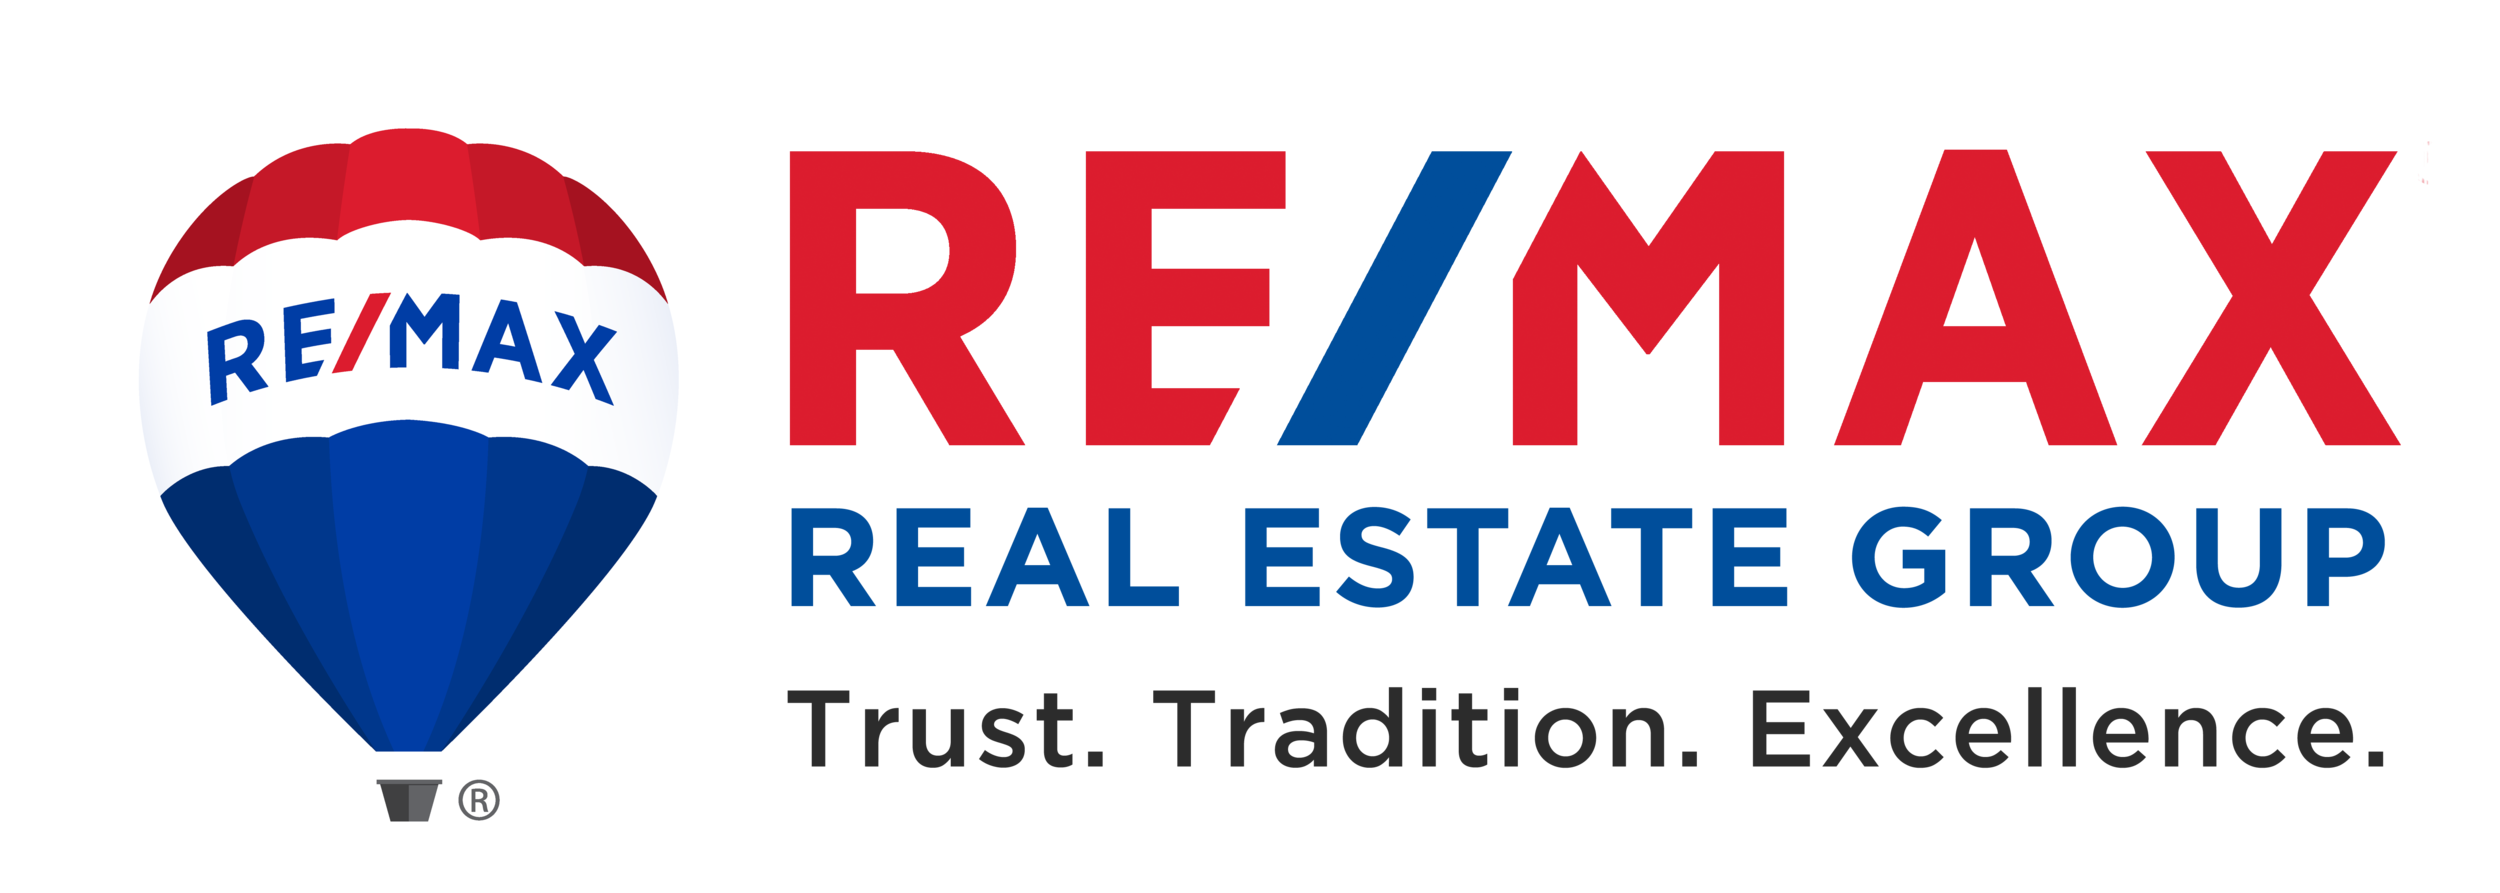 REMAX Office logo with balloon and tagline.png